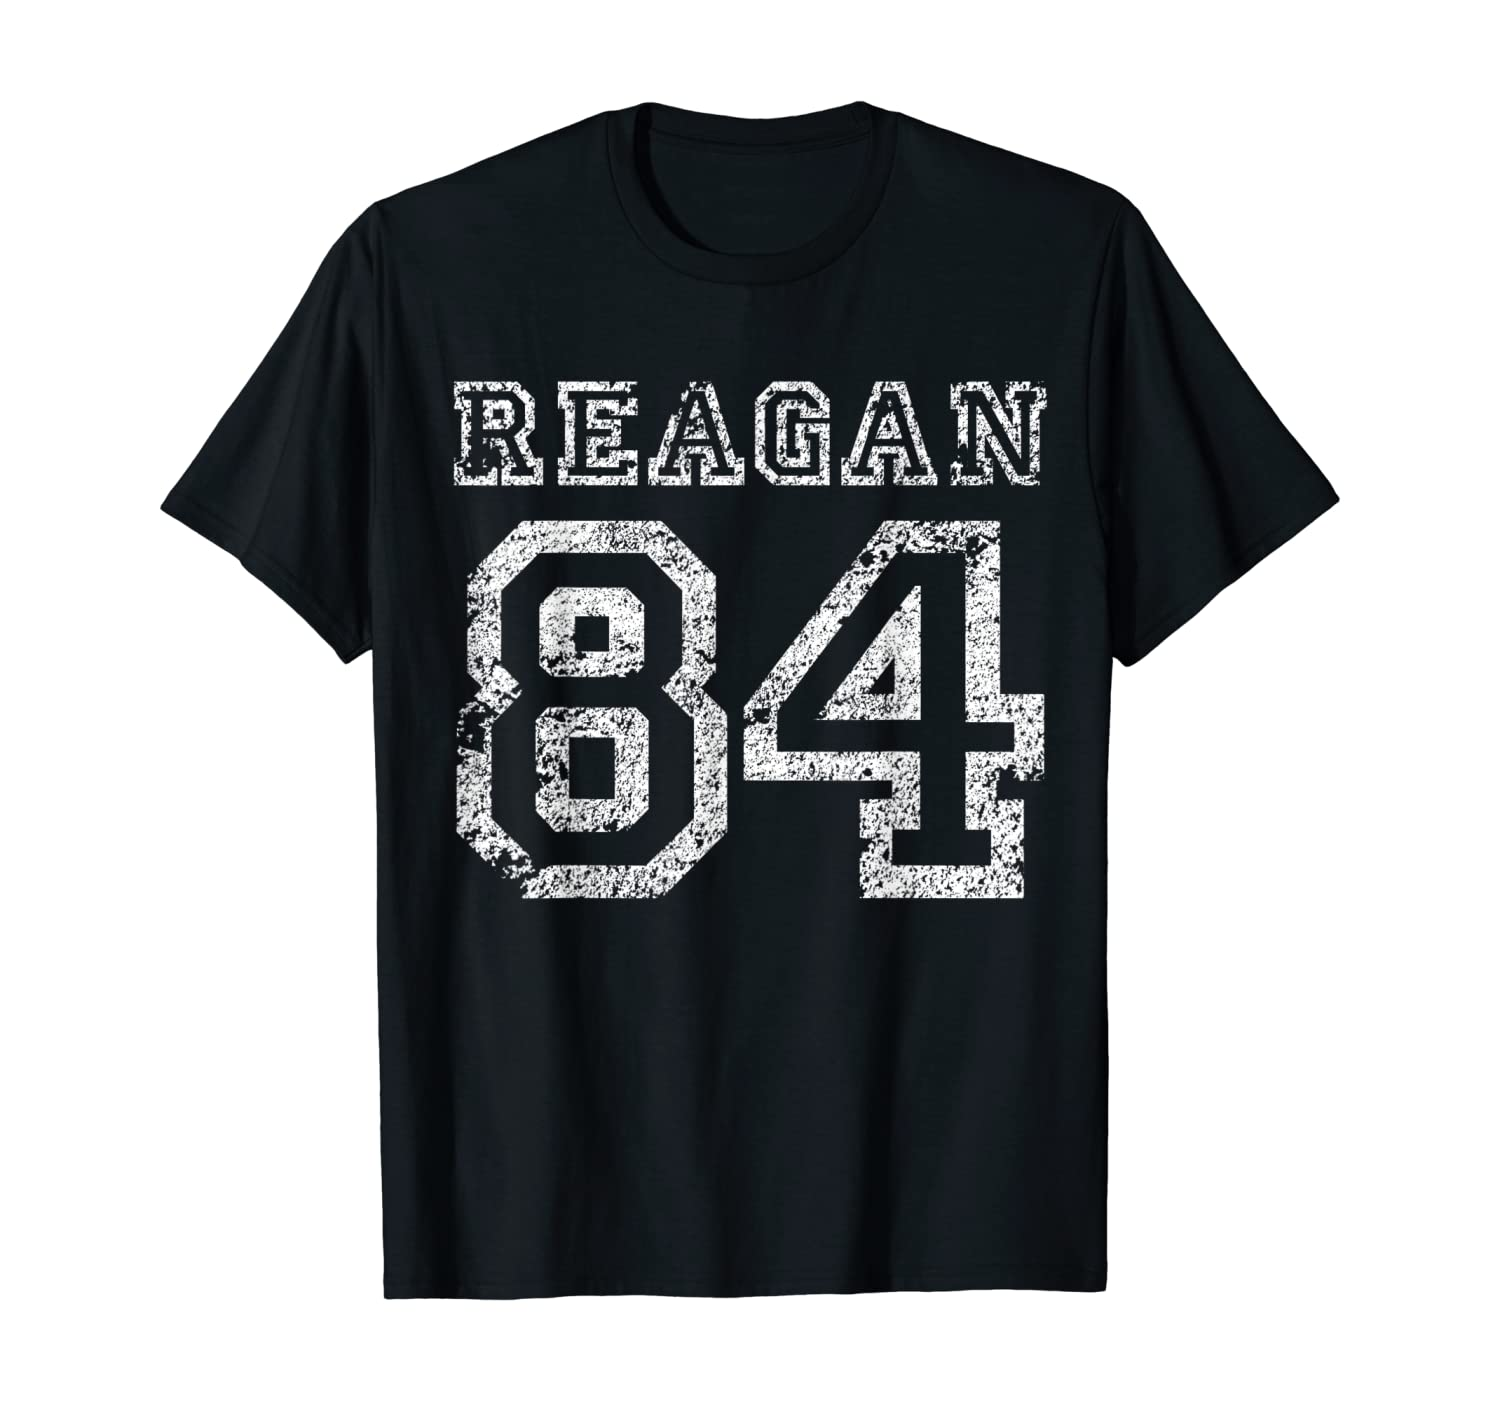 US President Ronald Reagan 84 Vintage Election Campaign T-Shirt